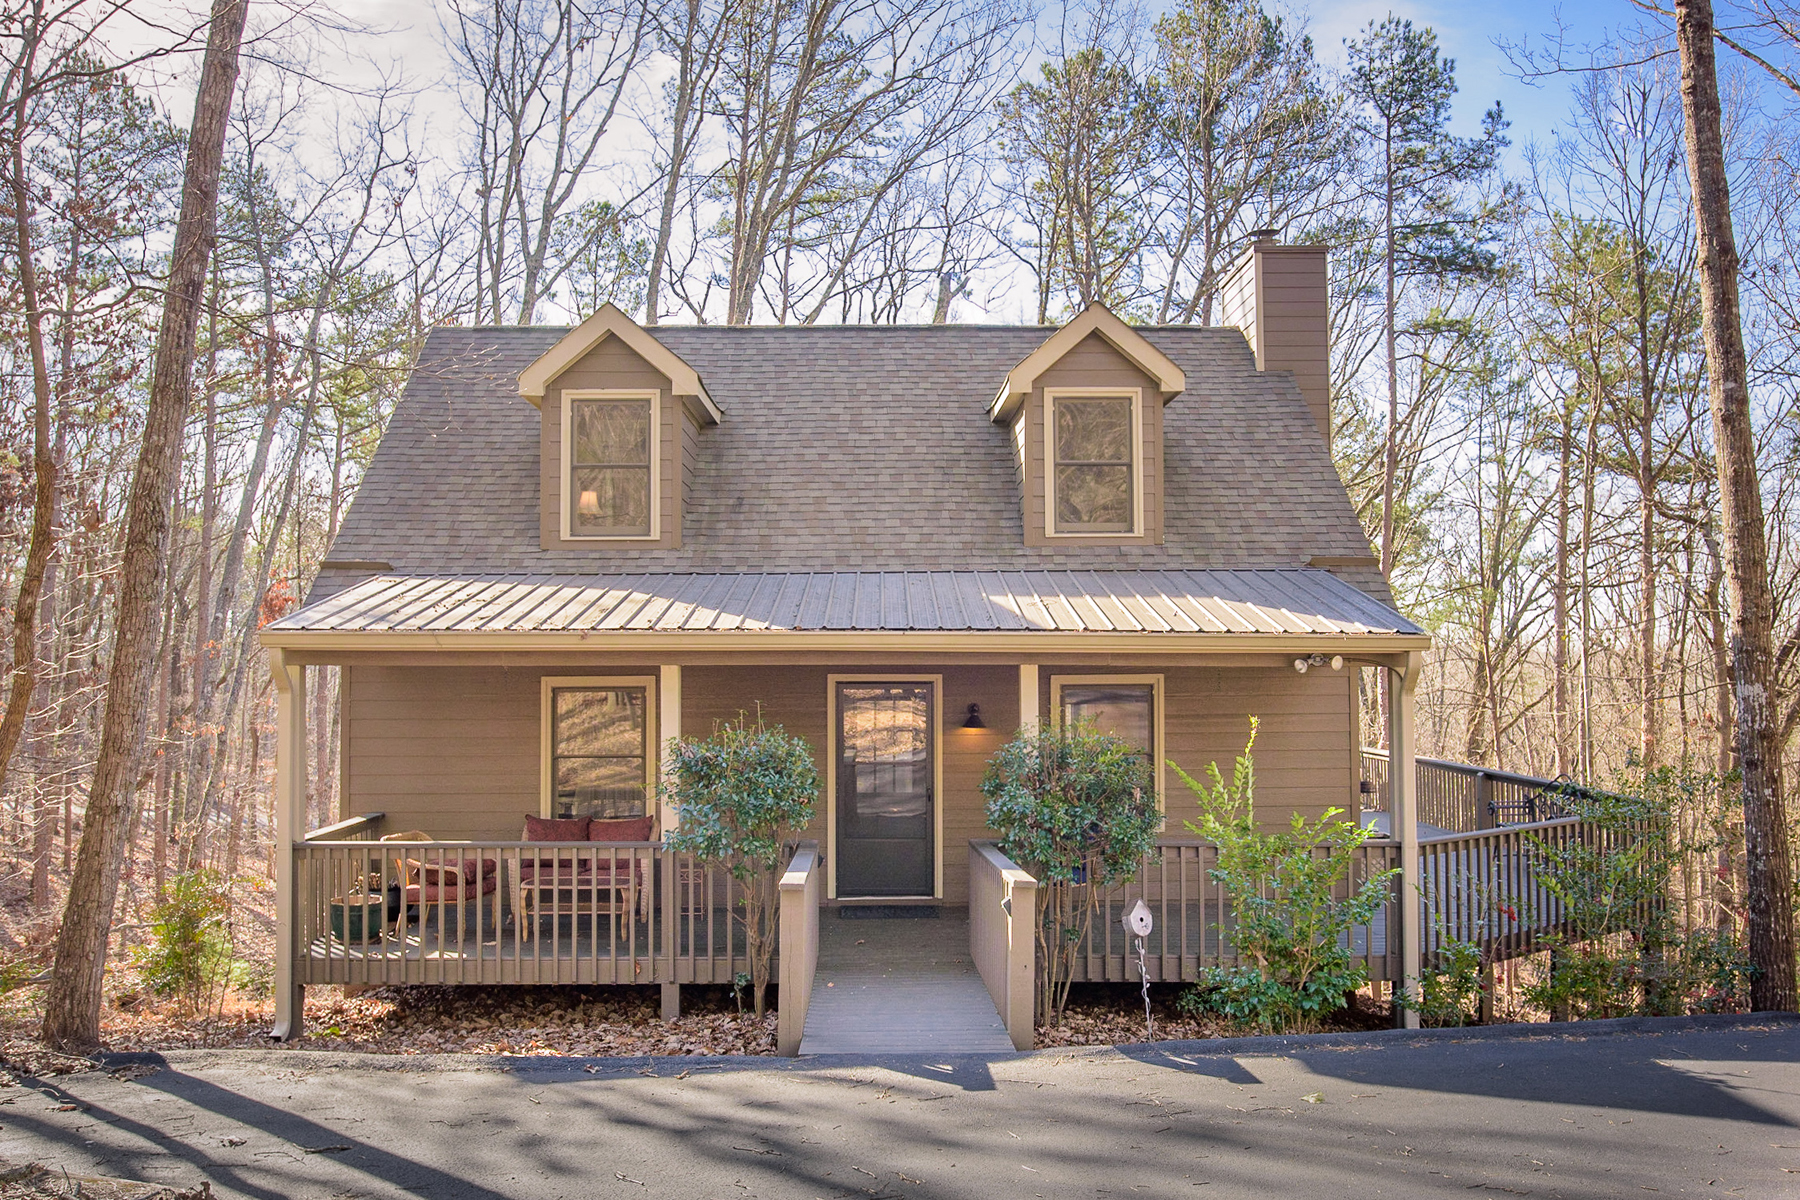 Single Family Home for Rent at Immaculate Home On Huge Corner Lot 21 Yearling Lane Big Canoe, Georgia 30143 United States